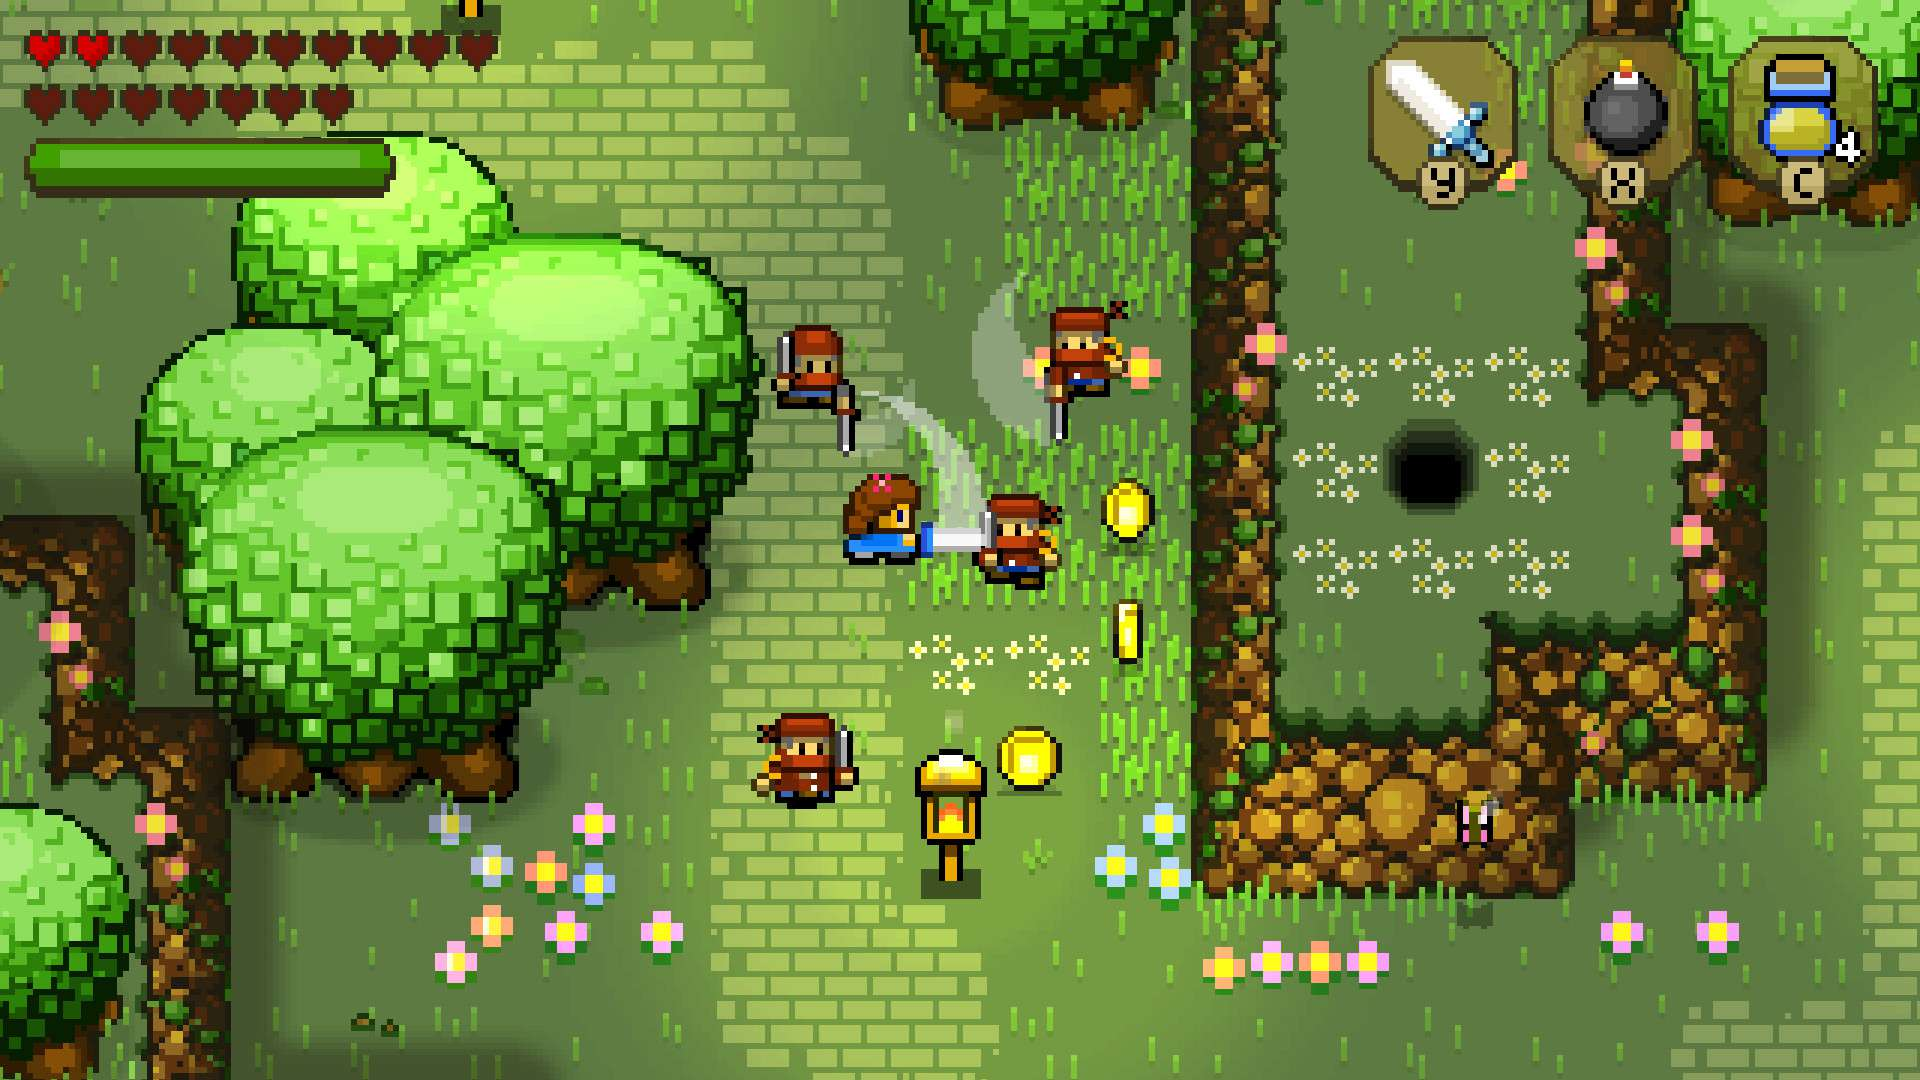 Blossom Tales: The Sleeping King #2